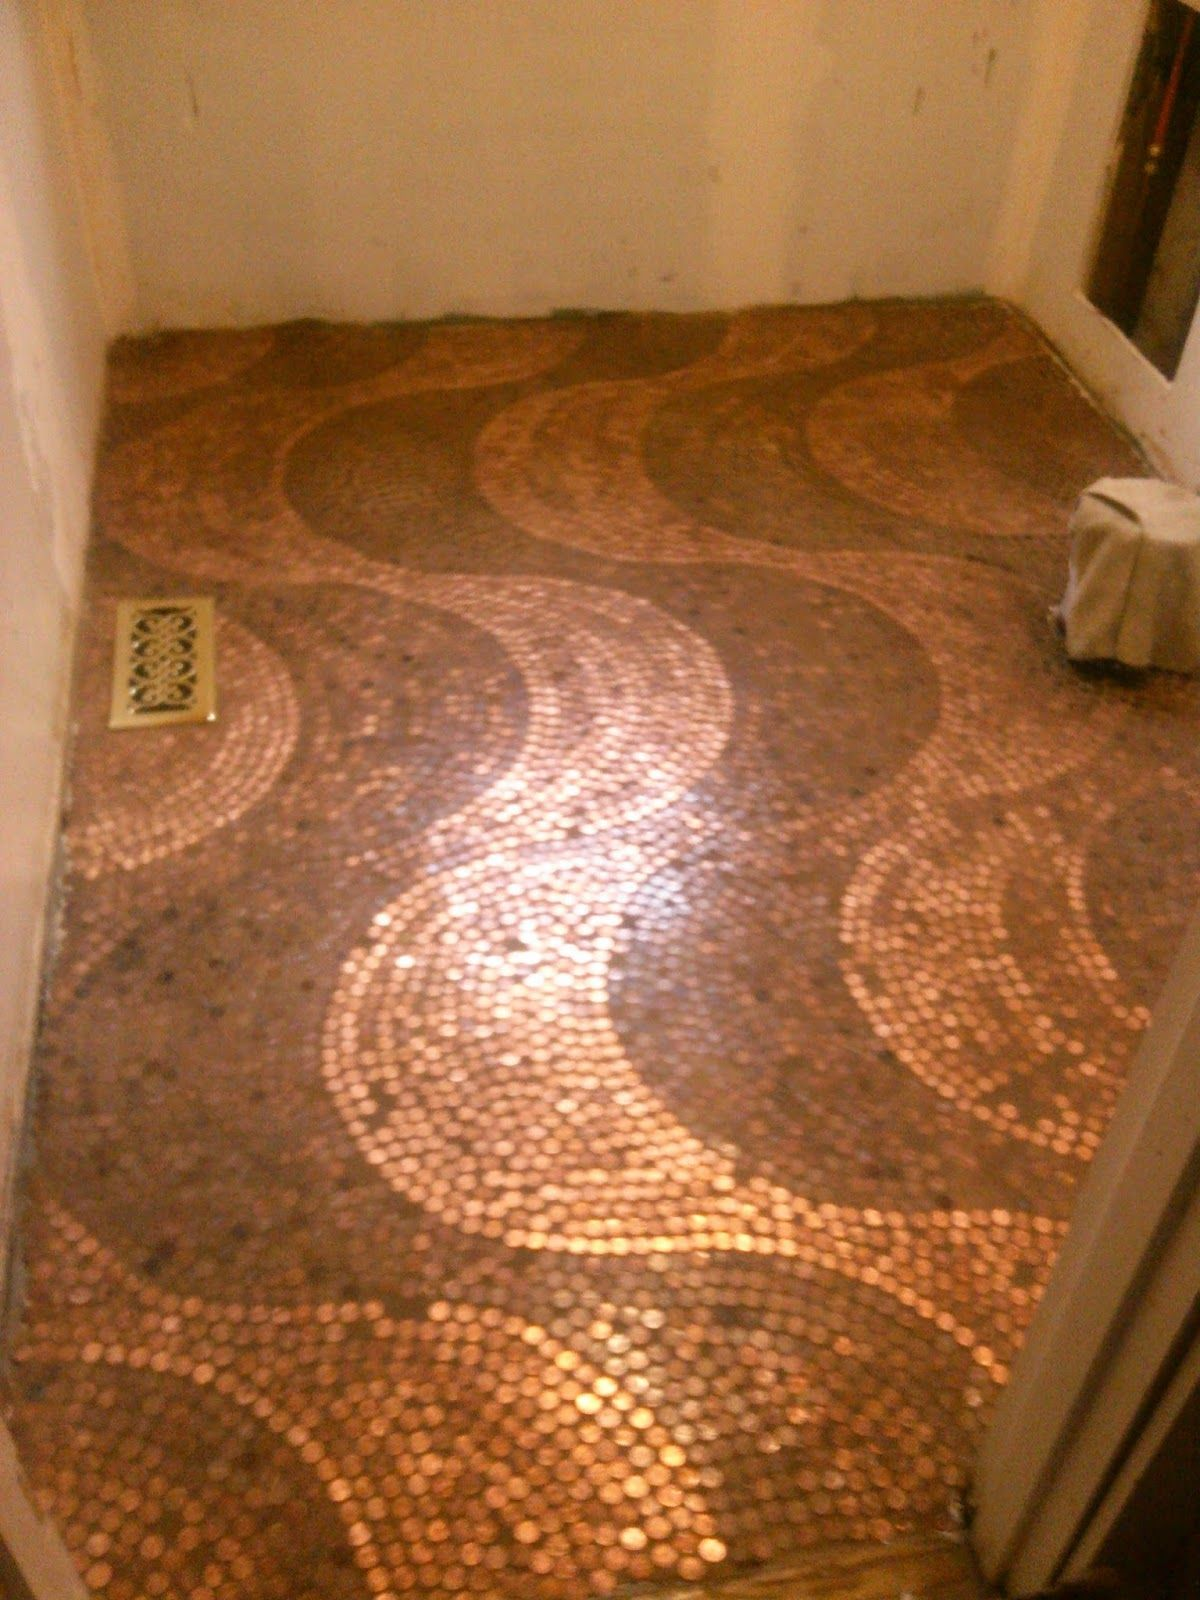 Our Penny Floor Penny Floor Cheap Flooring Penny Decor